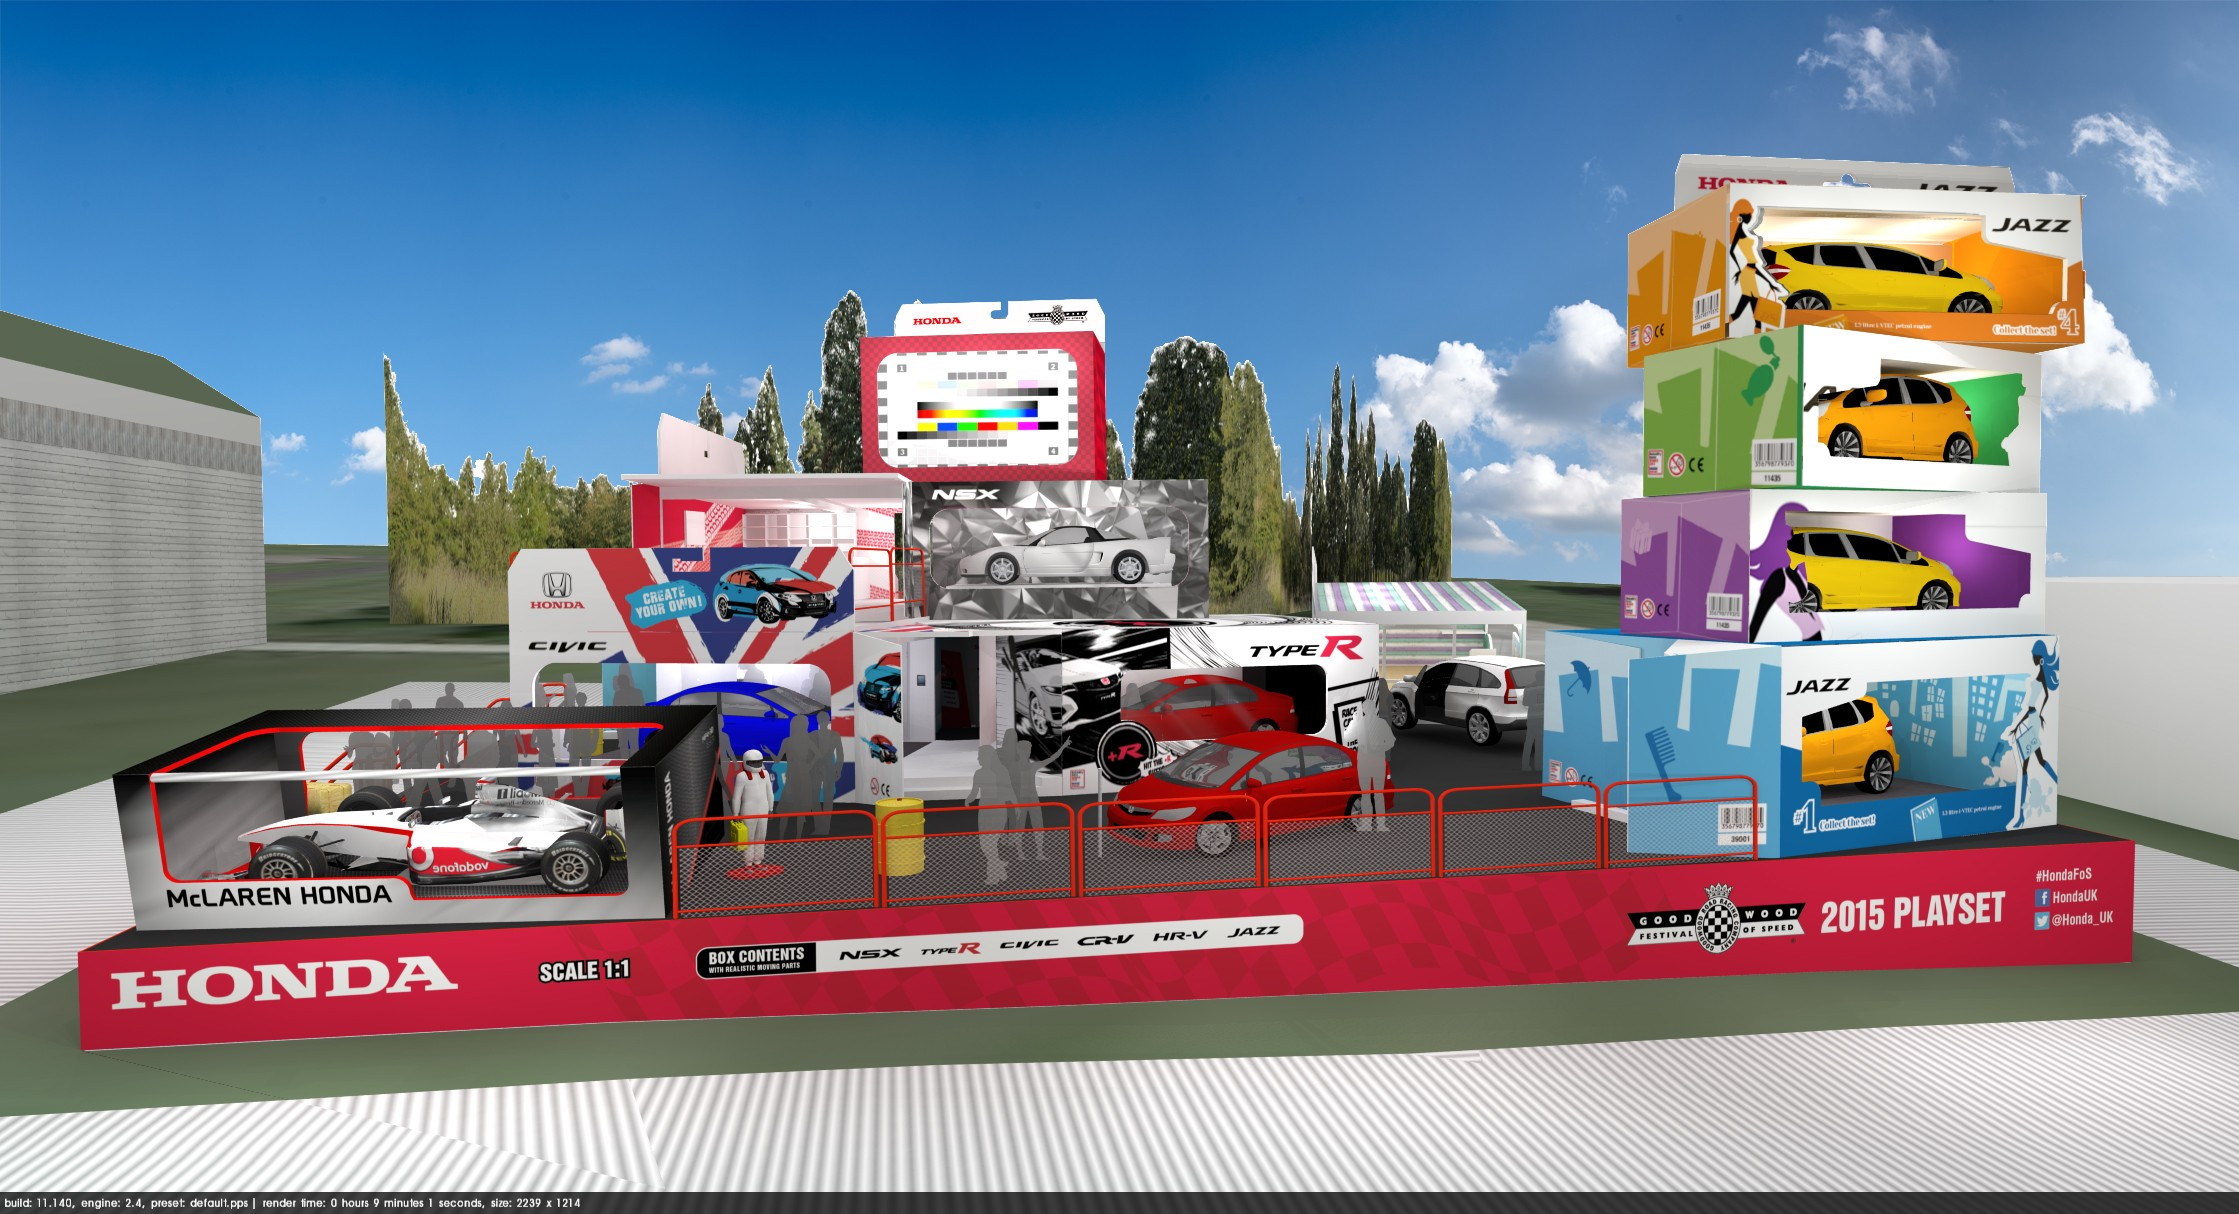 Honda's Stand at Goodwood Looks a Lot Like the Toy Story Animation Movie Set - autoevolution